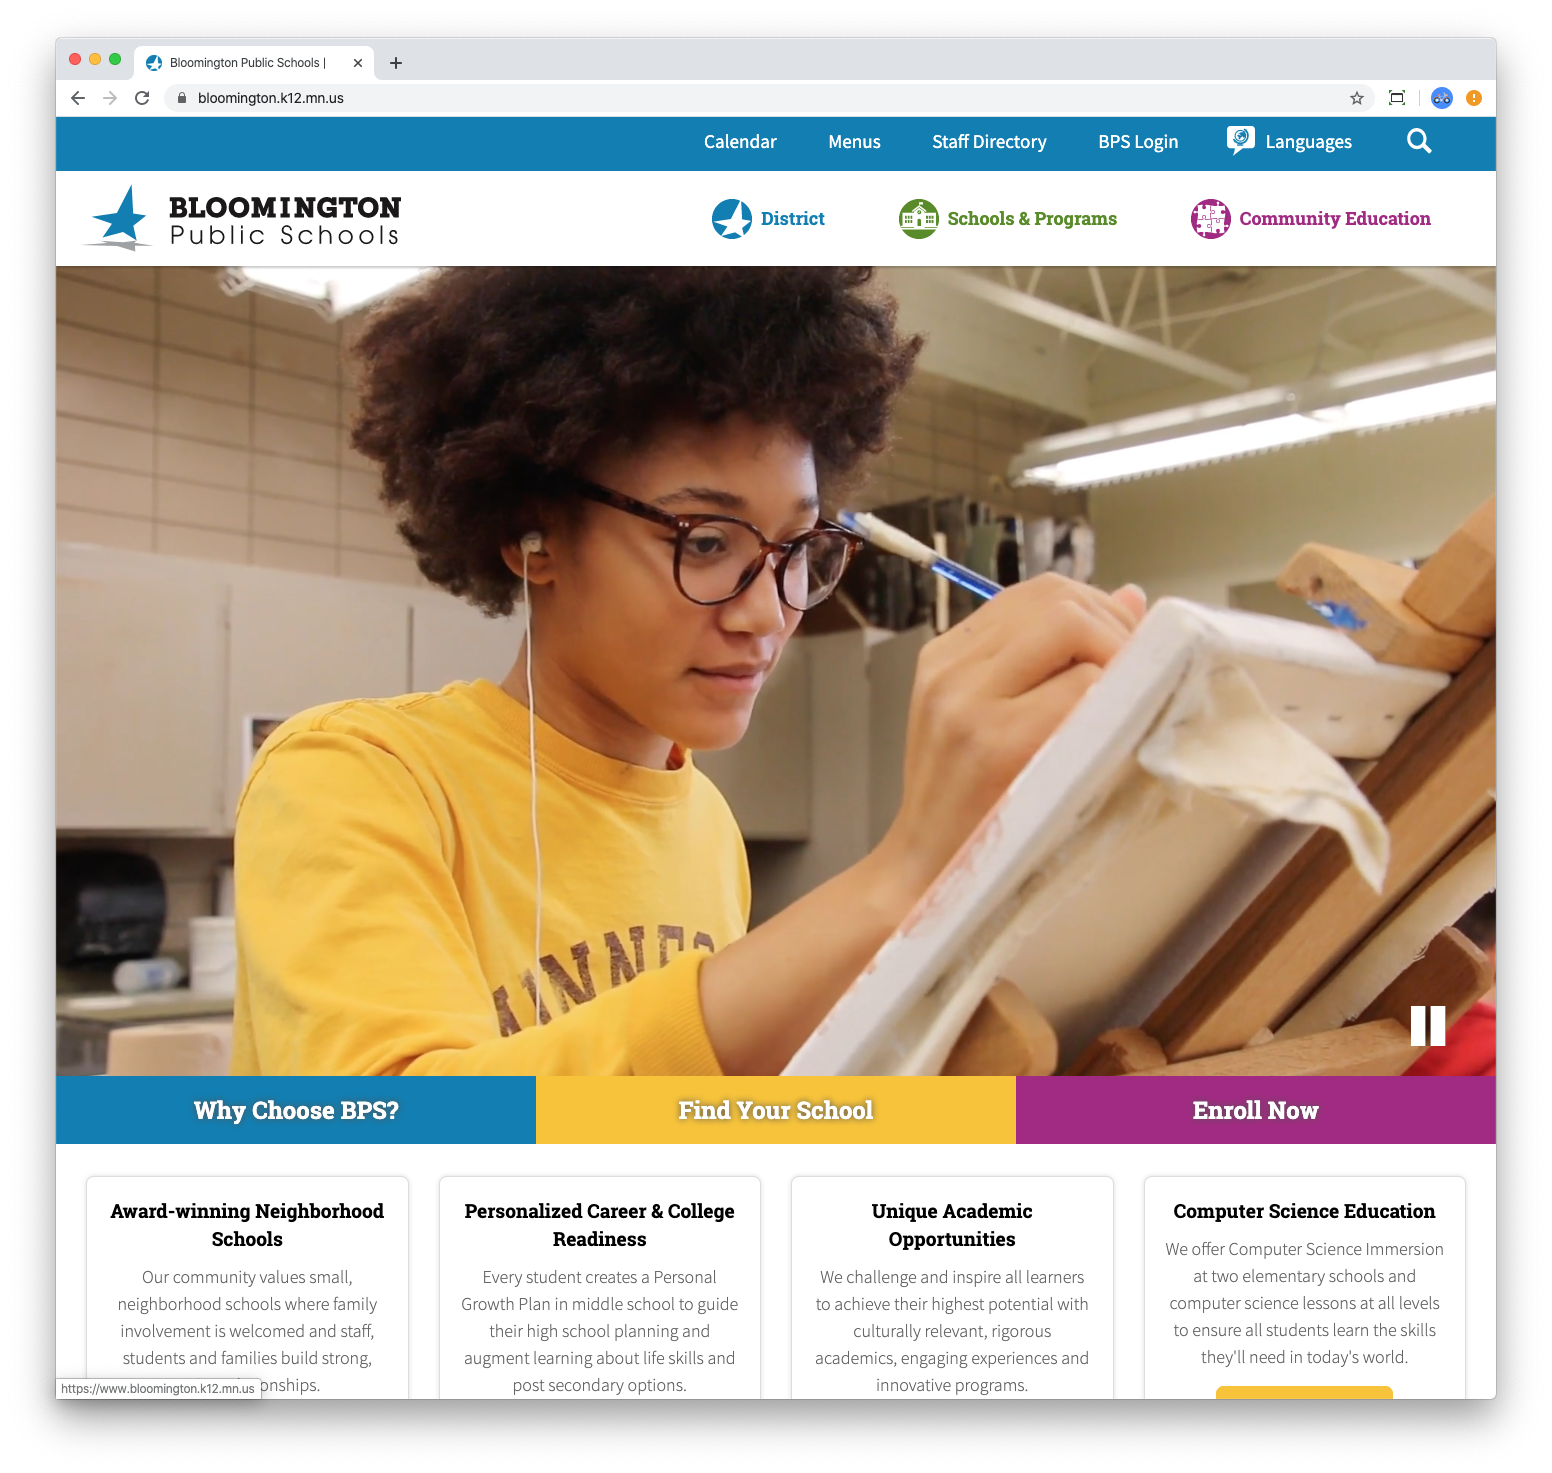 Bloomington Public Schools website